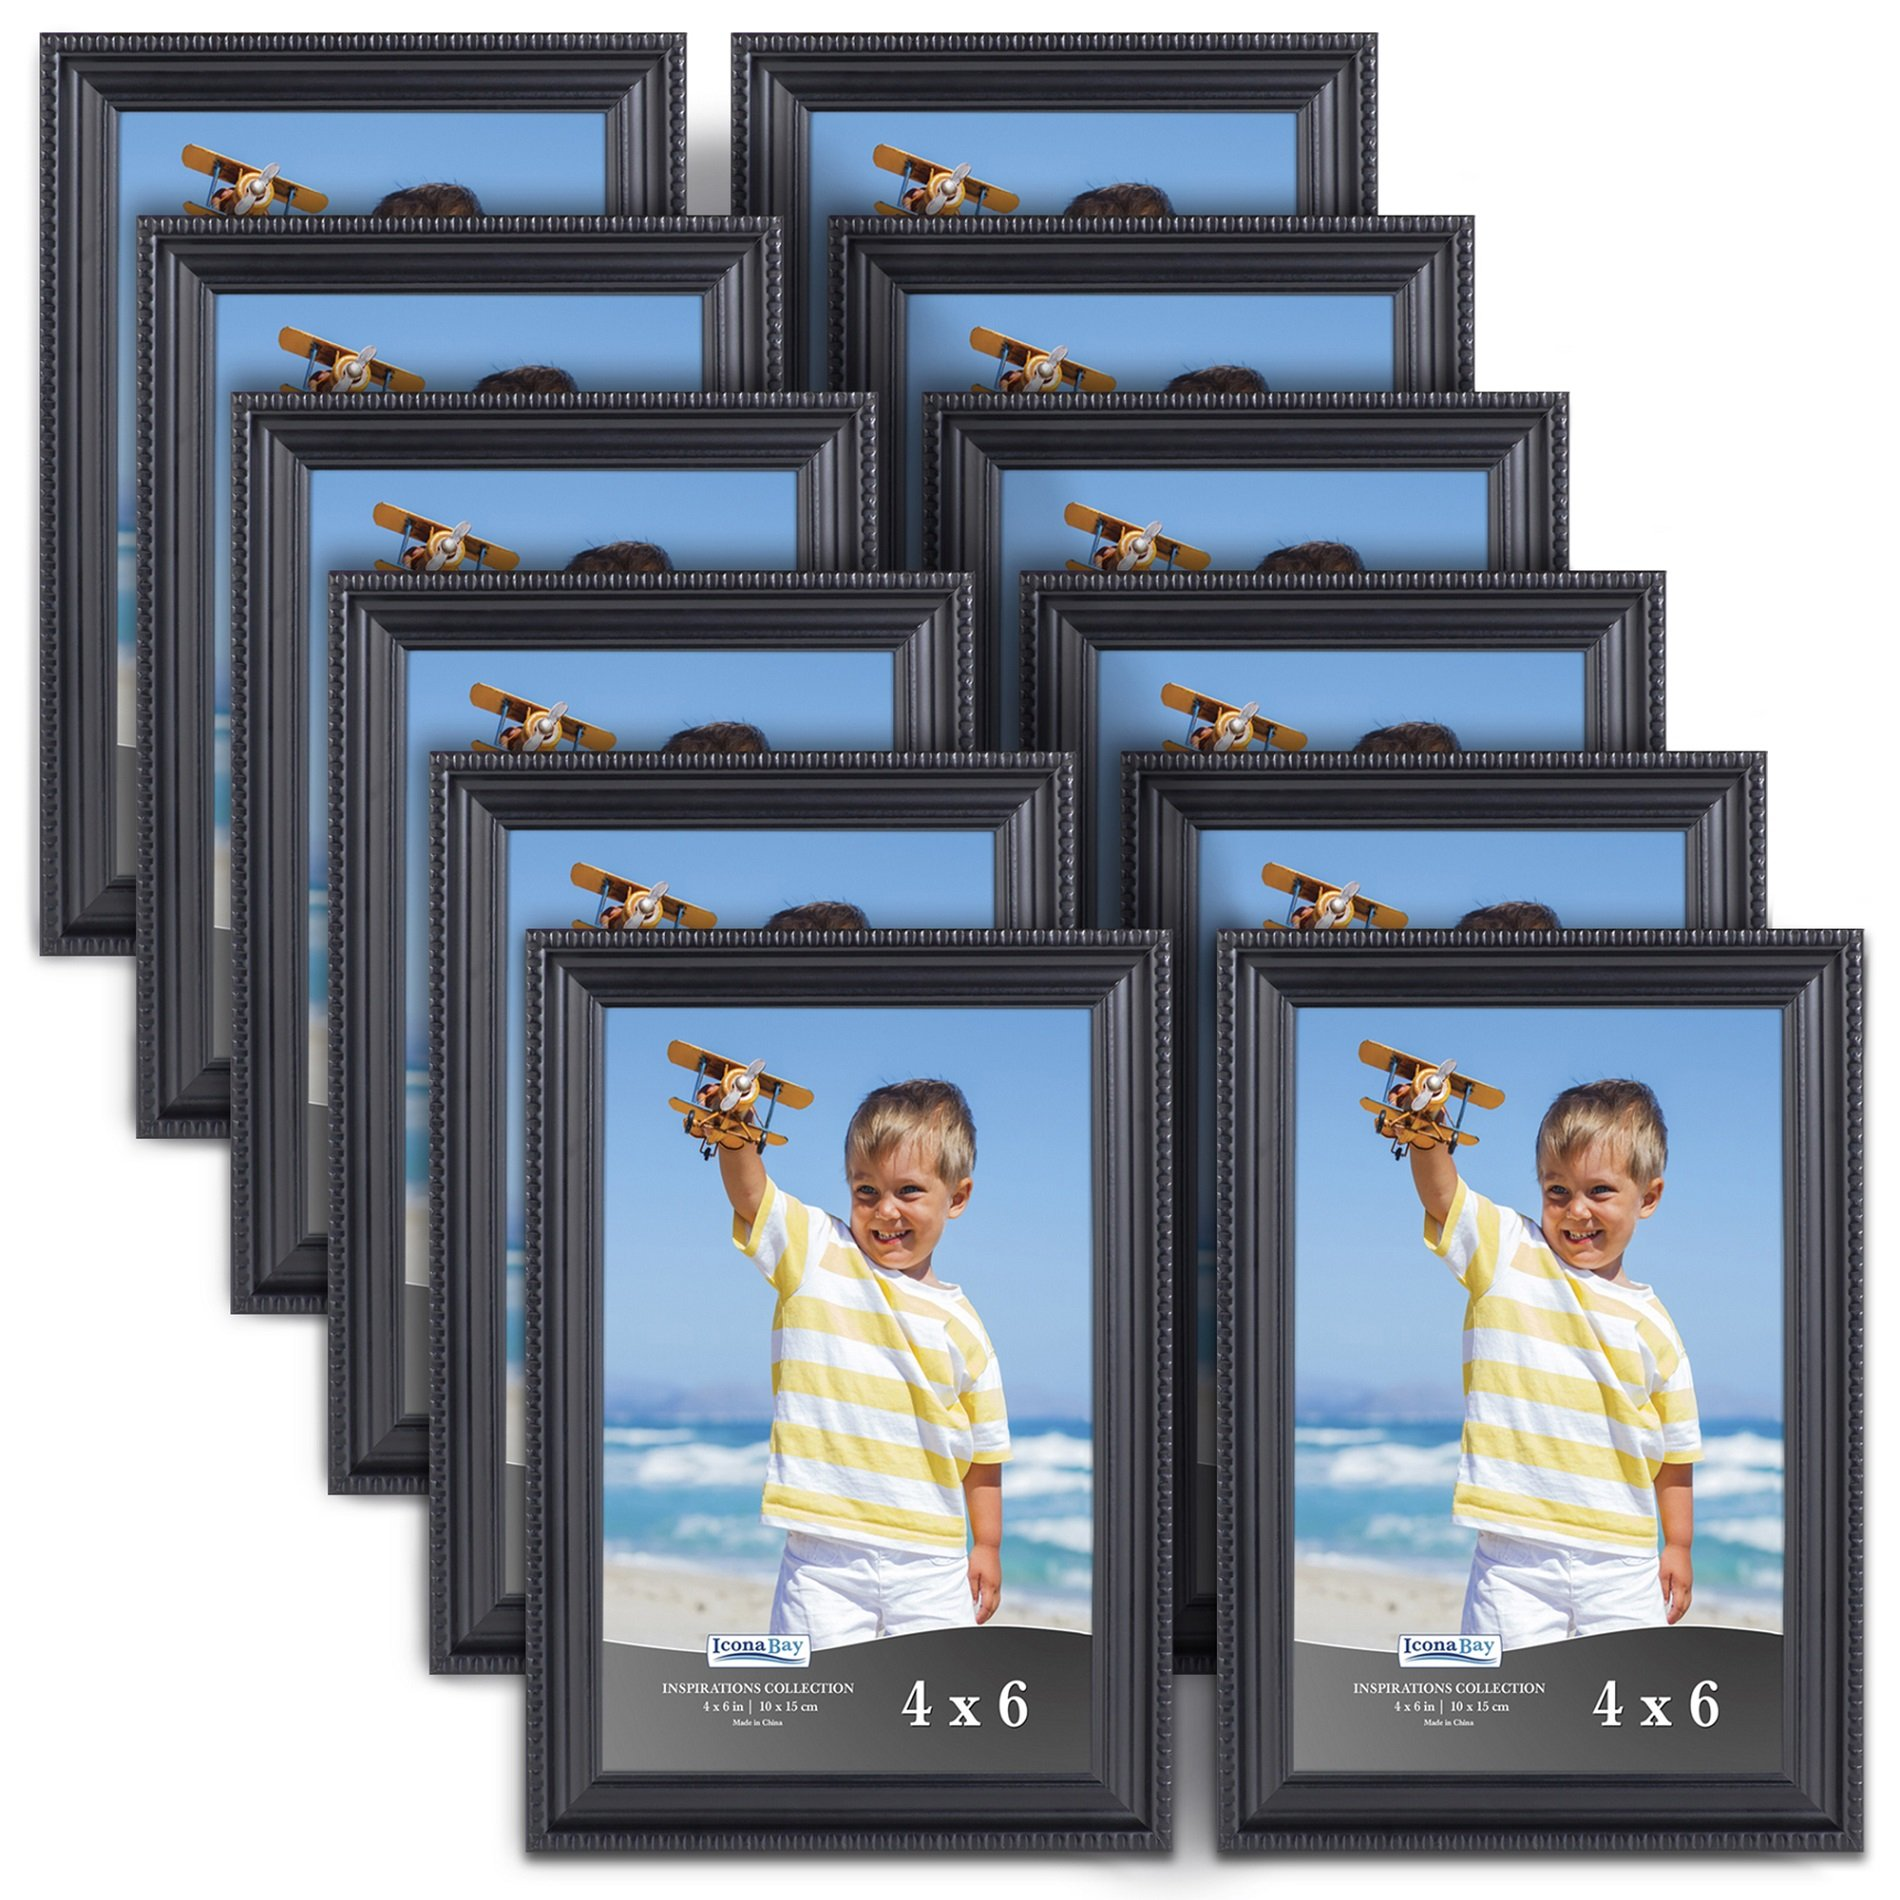 Icona Bay Black Picture Frames (4 x 6 Inch, 12 Pack) Bulk Set, Wall Mount Hangers and Table Top Easel Included, Display Horizontally or Vertically, Inspirations Collection